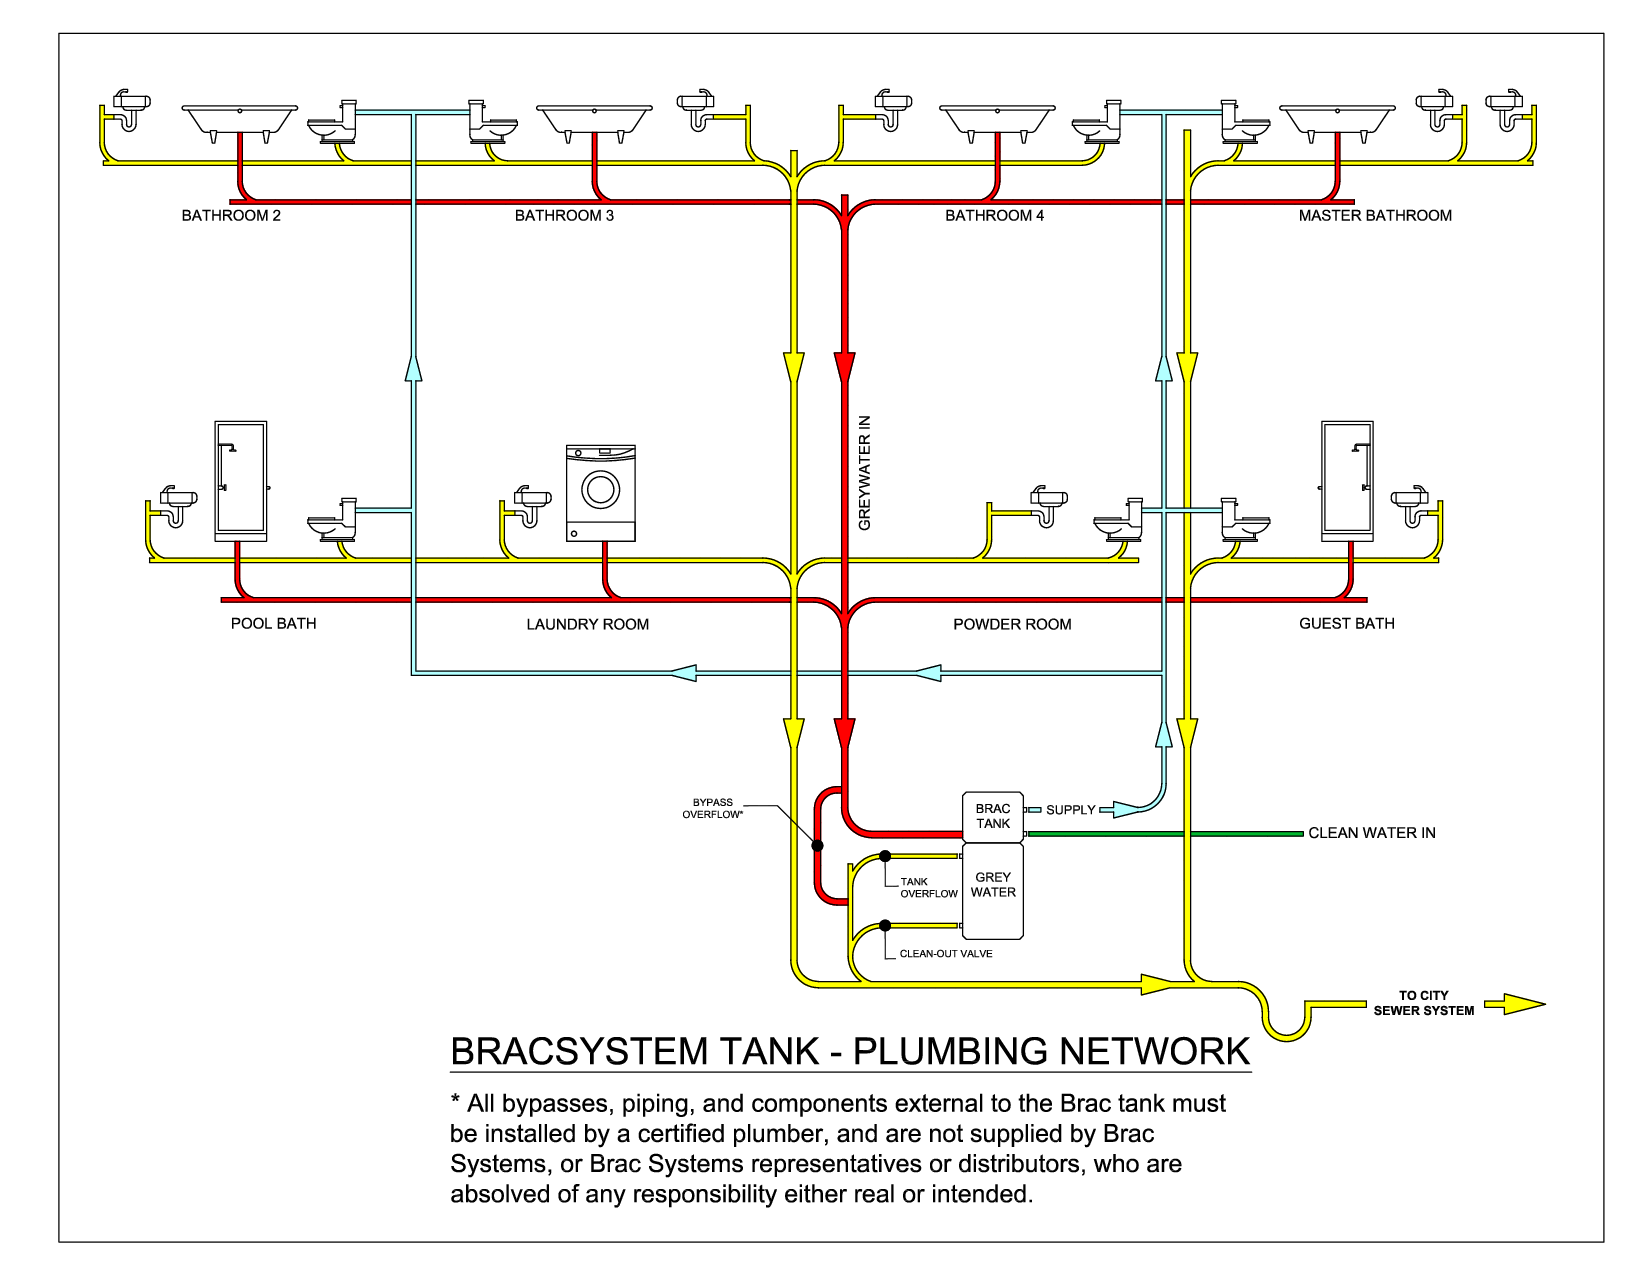 Mobile home plumbing systems plumbing network diagram for Blueprints and plans for hvac pdf